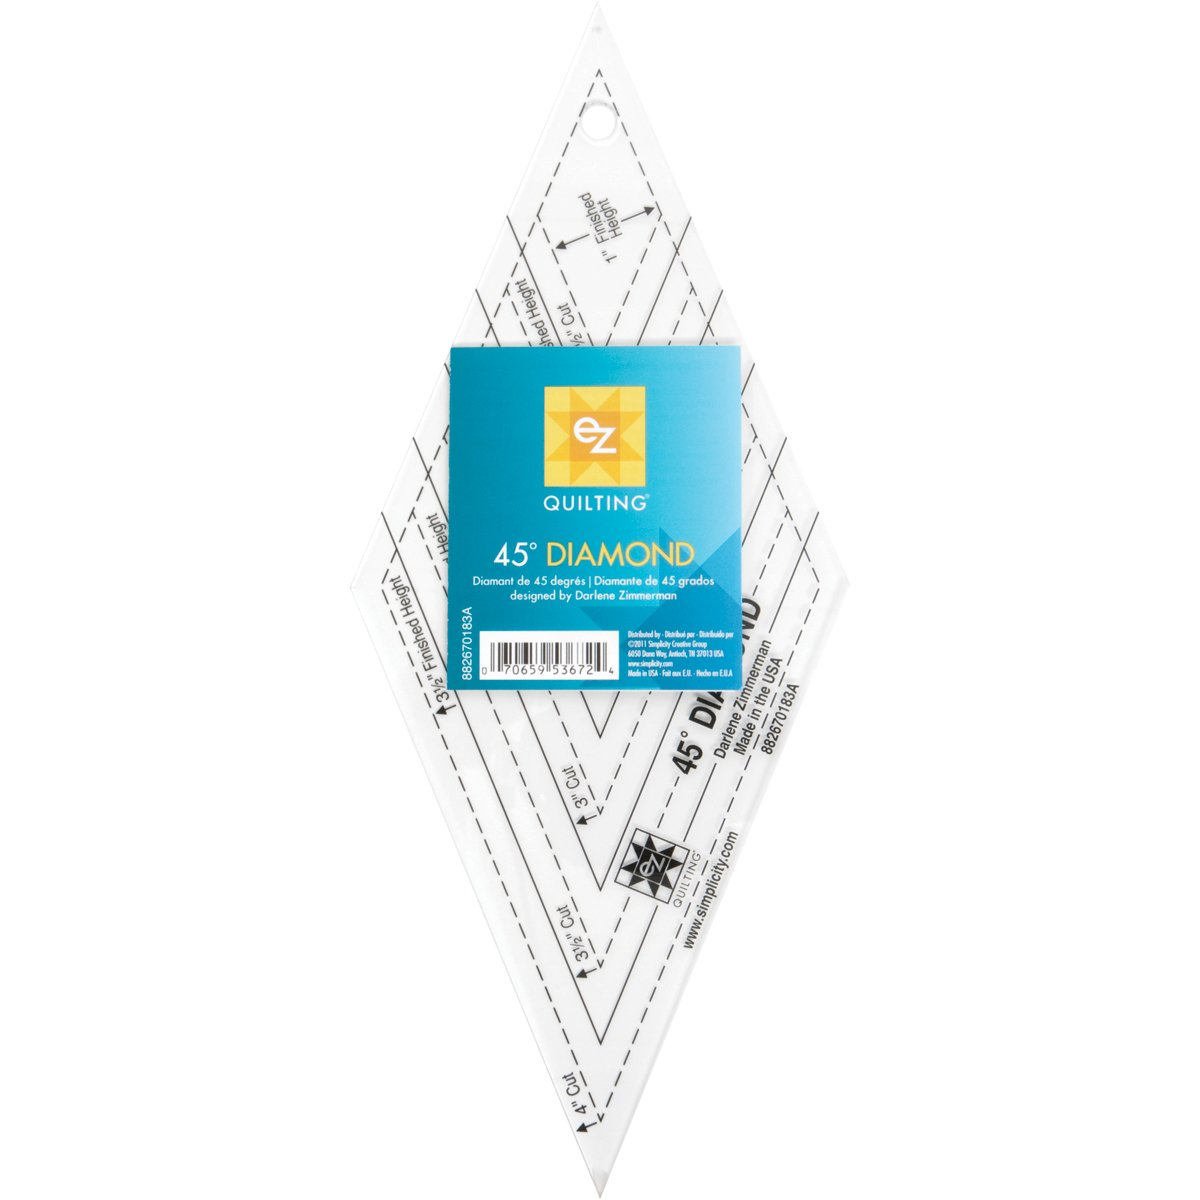 EZ Quilting 45° Diamond Acrylic Template Simplicity 670183A